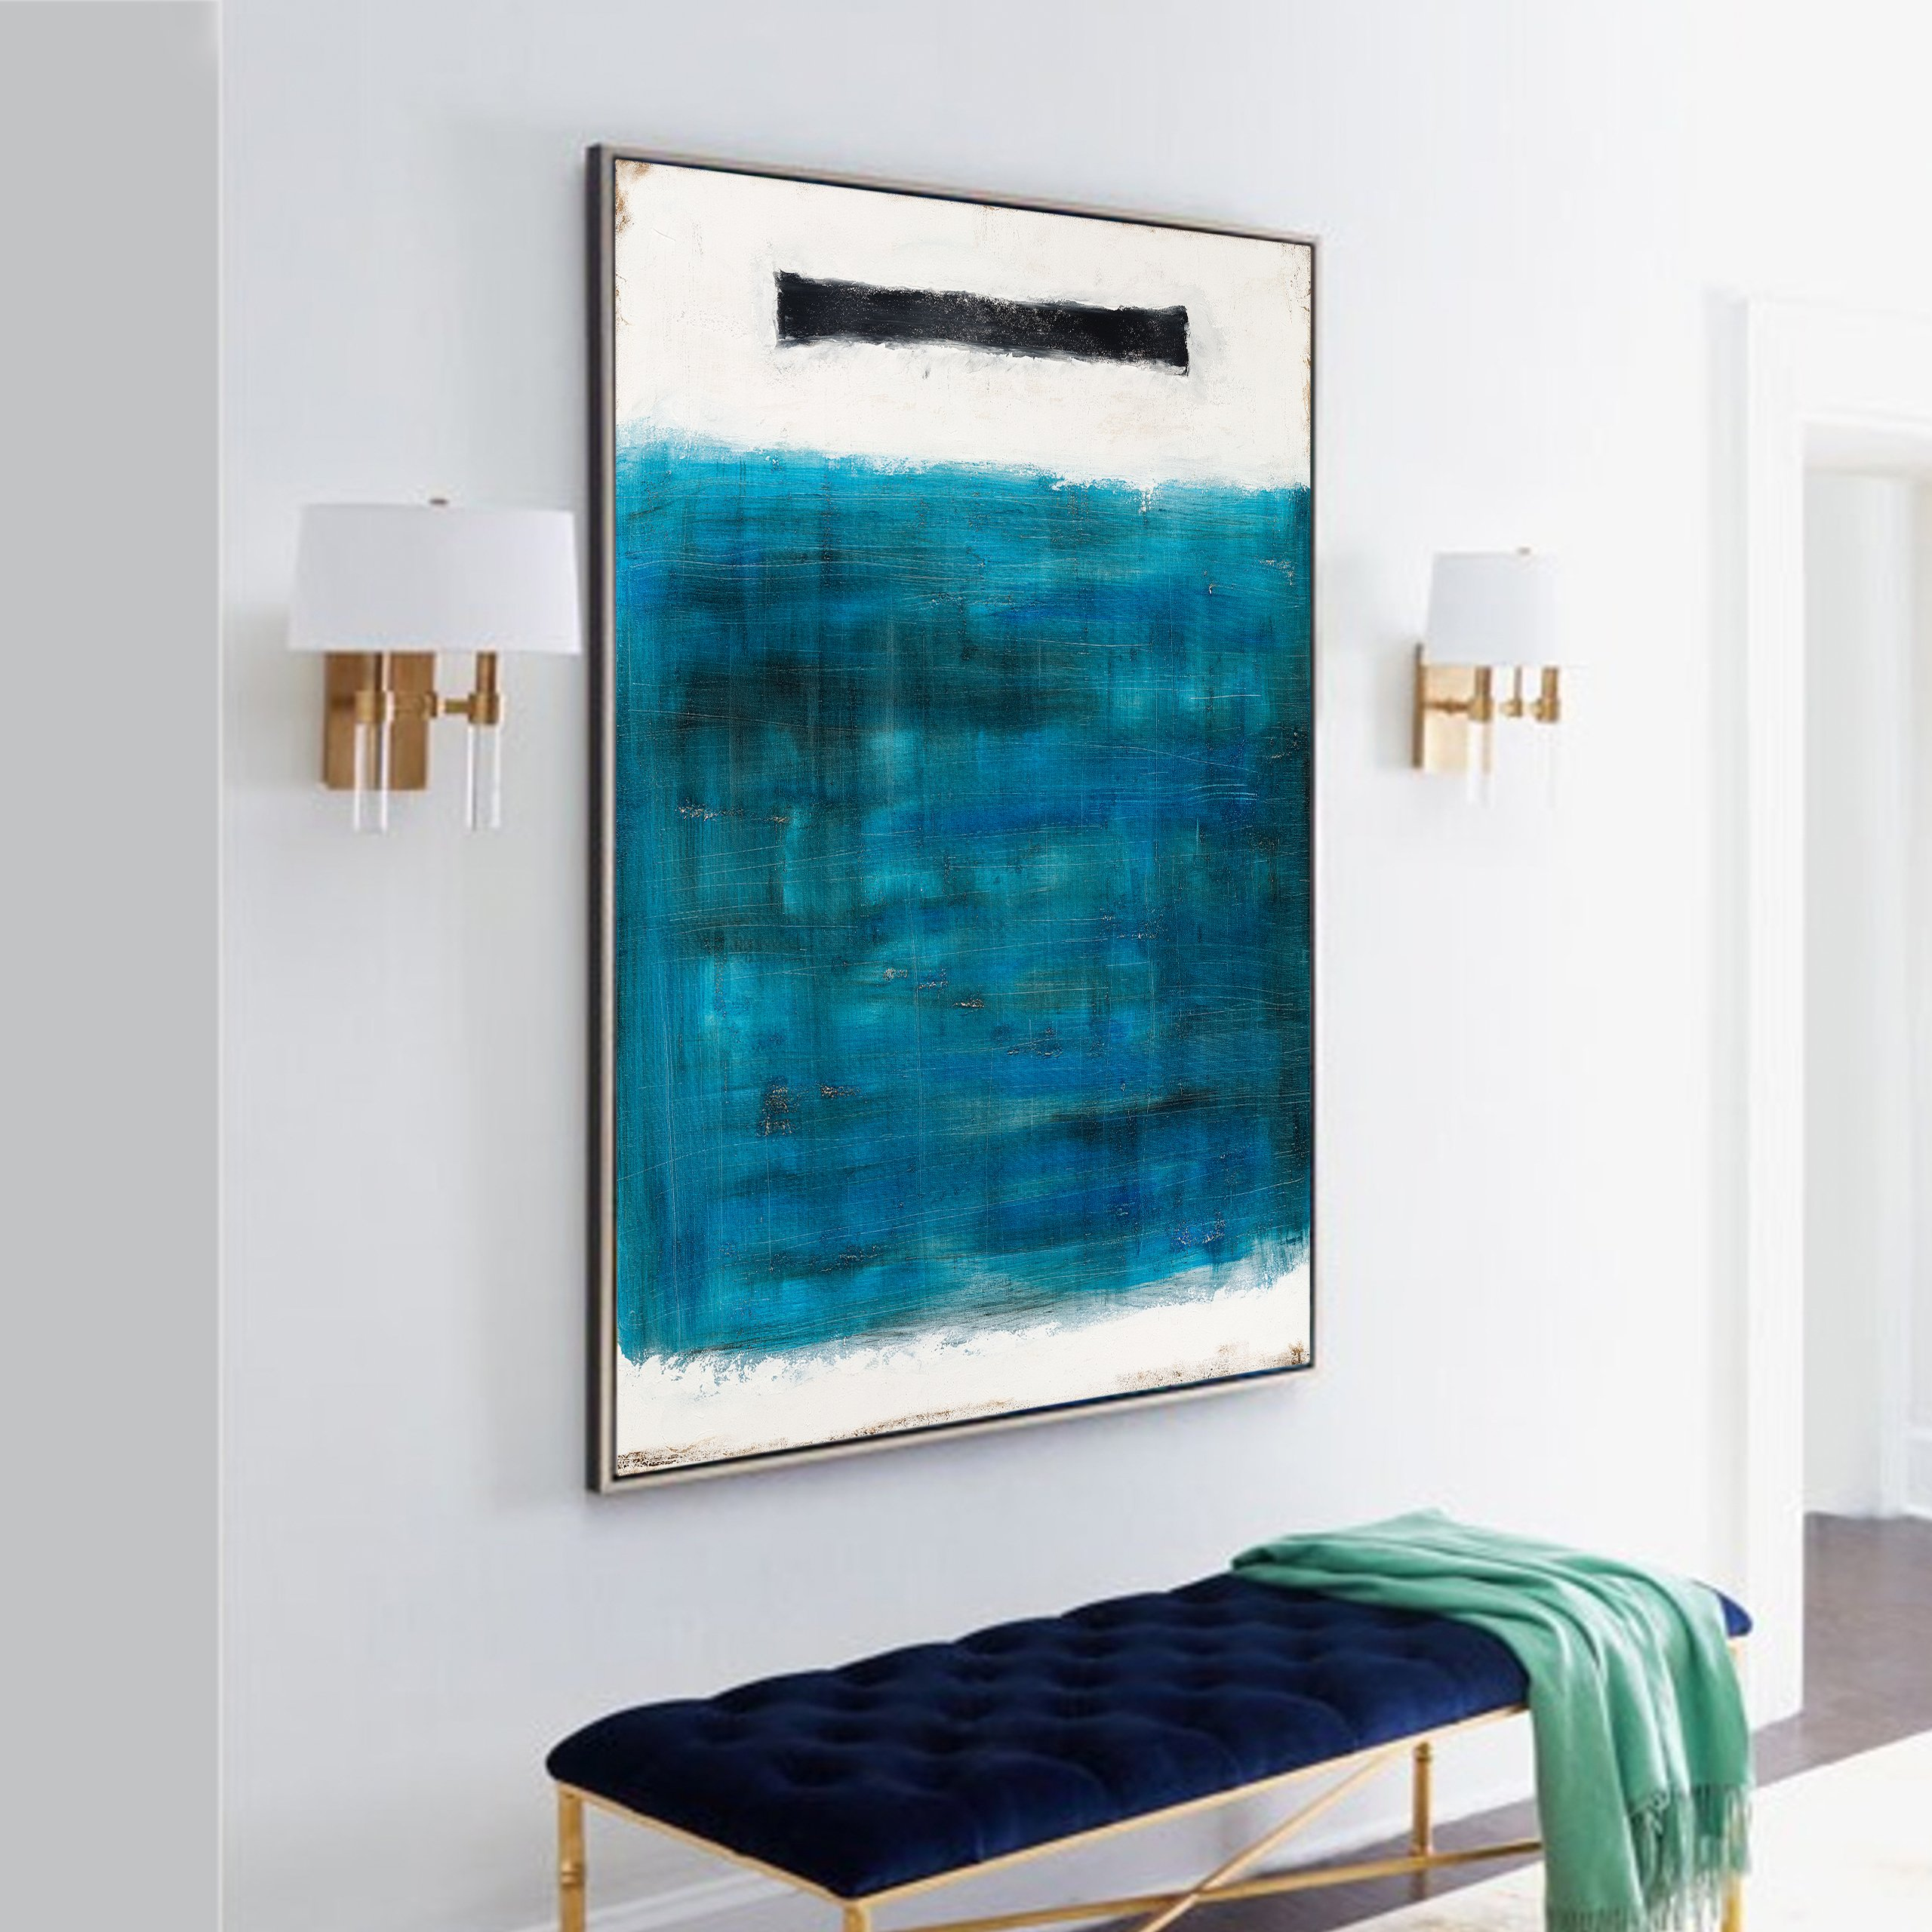 White and blue abstract painting on canvas